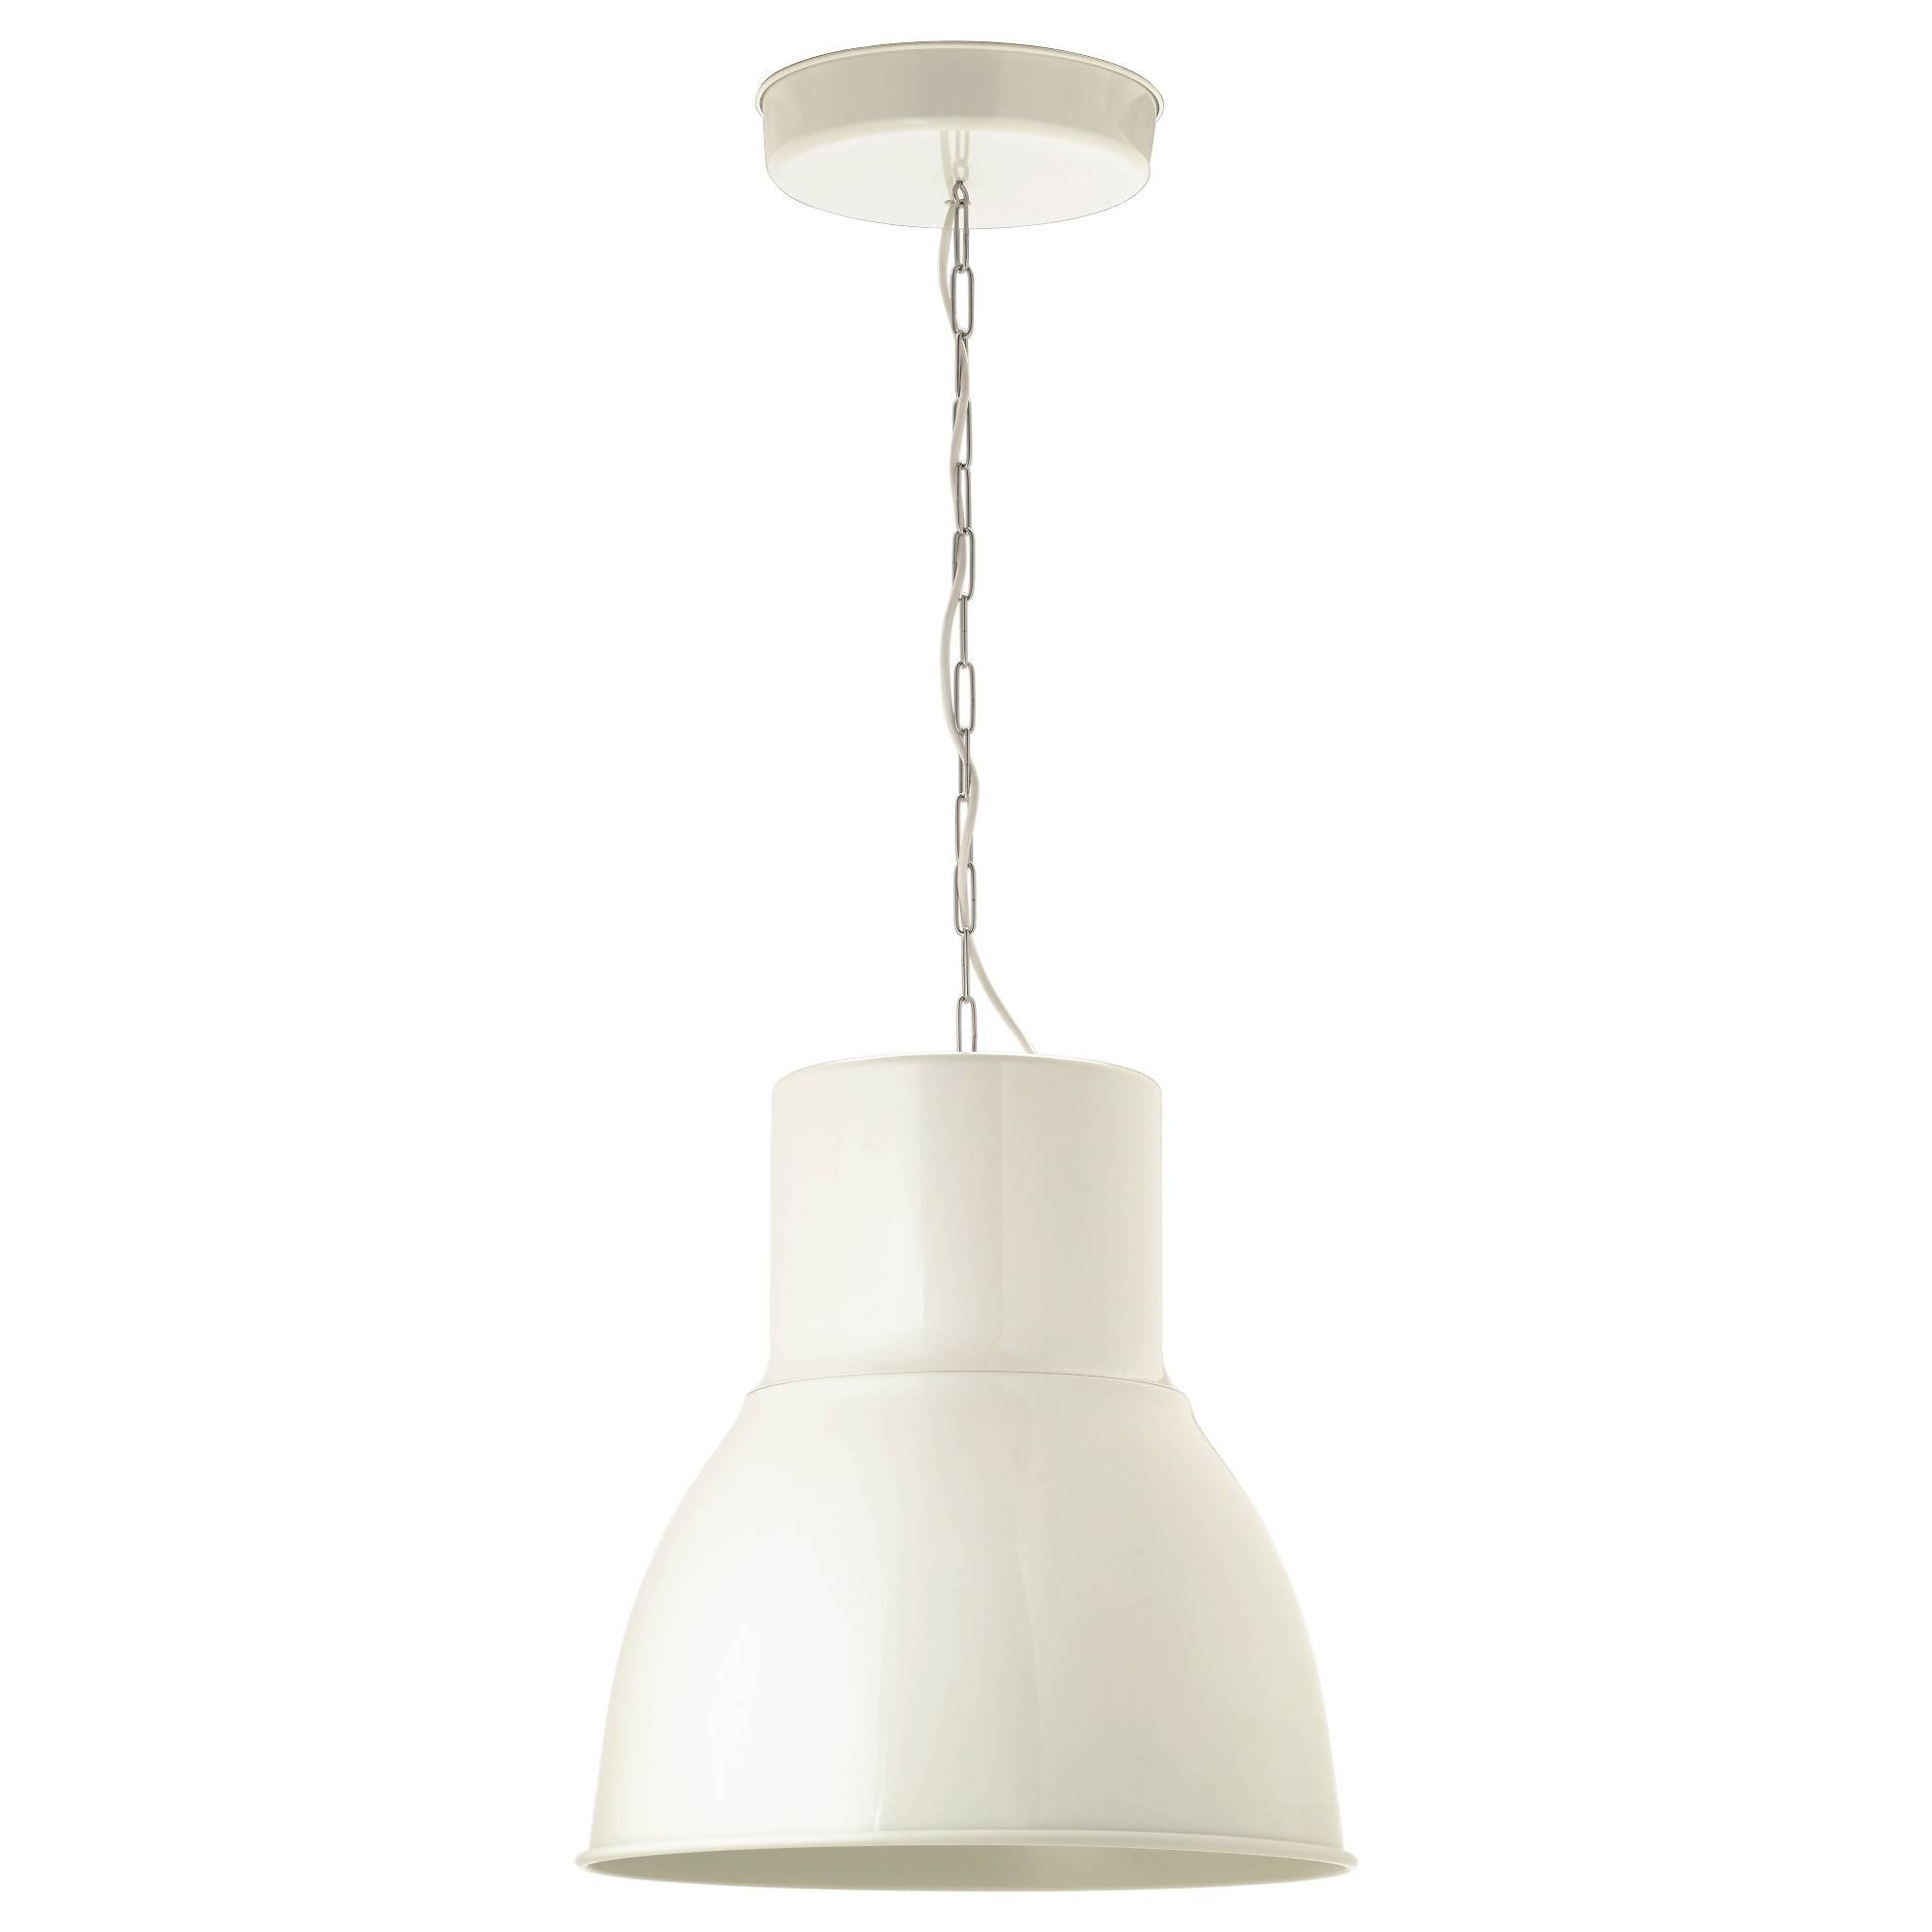 Ceiling Lights & Lamps – Ikea For Ikea Globe Pendant Lights (View 2 of 15)